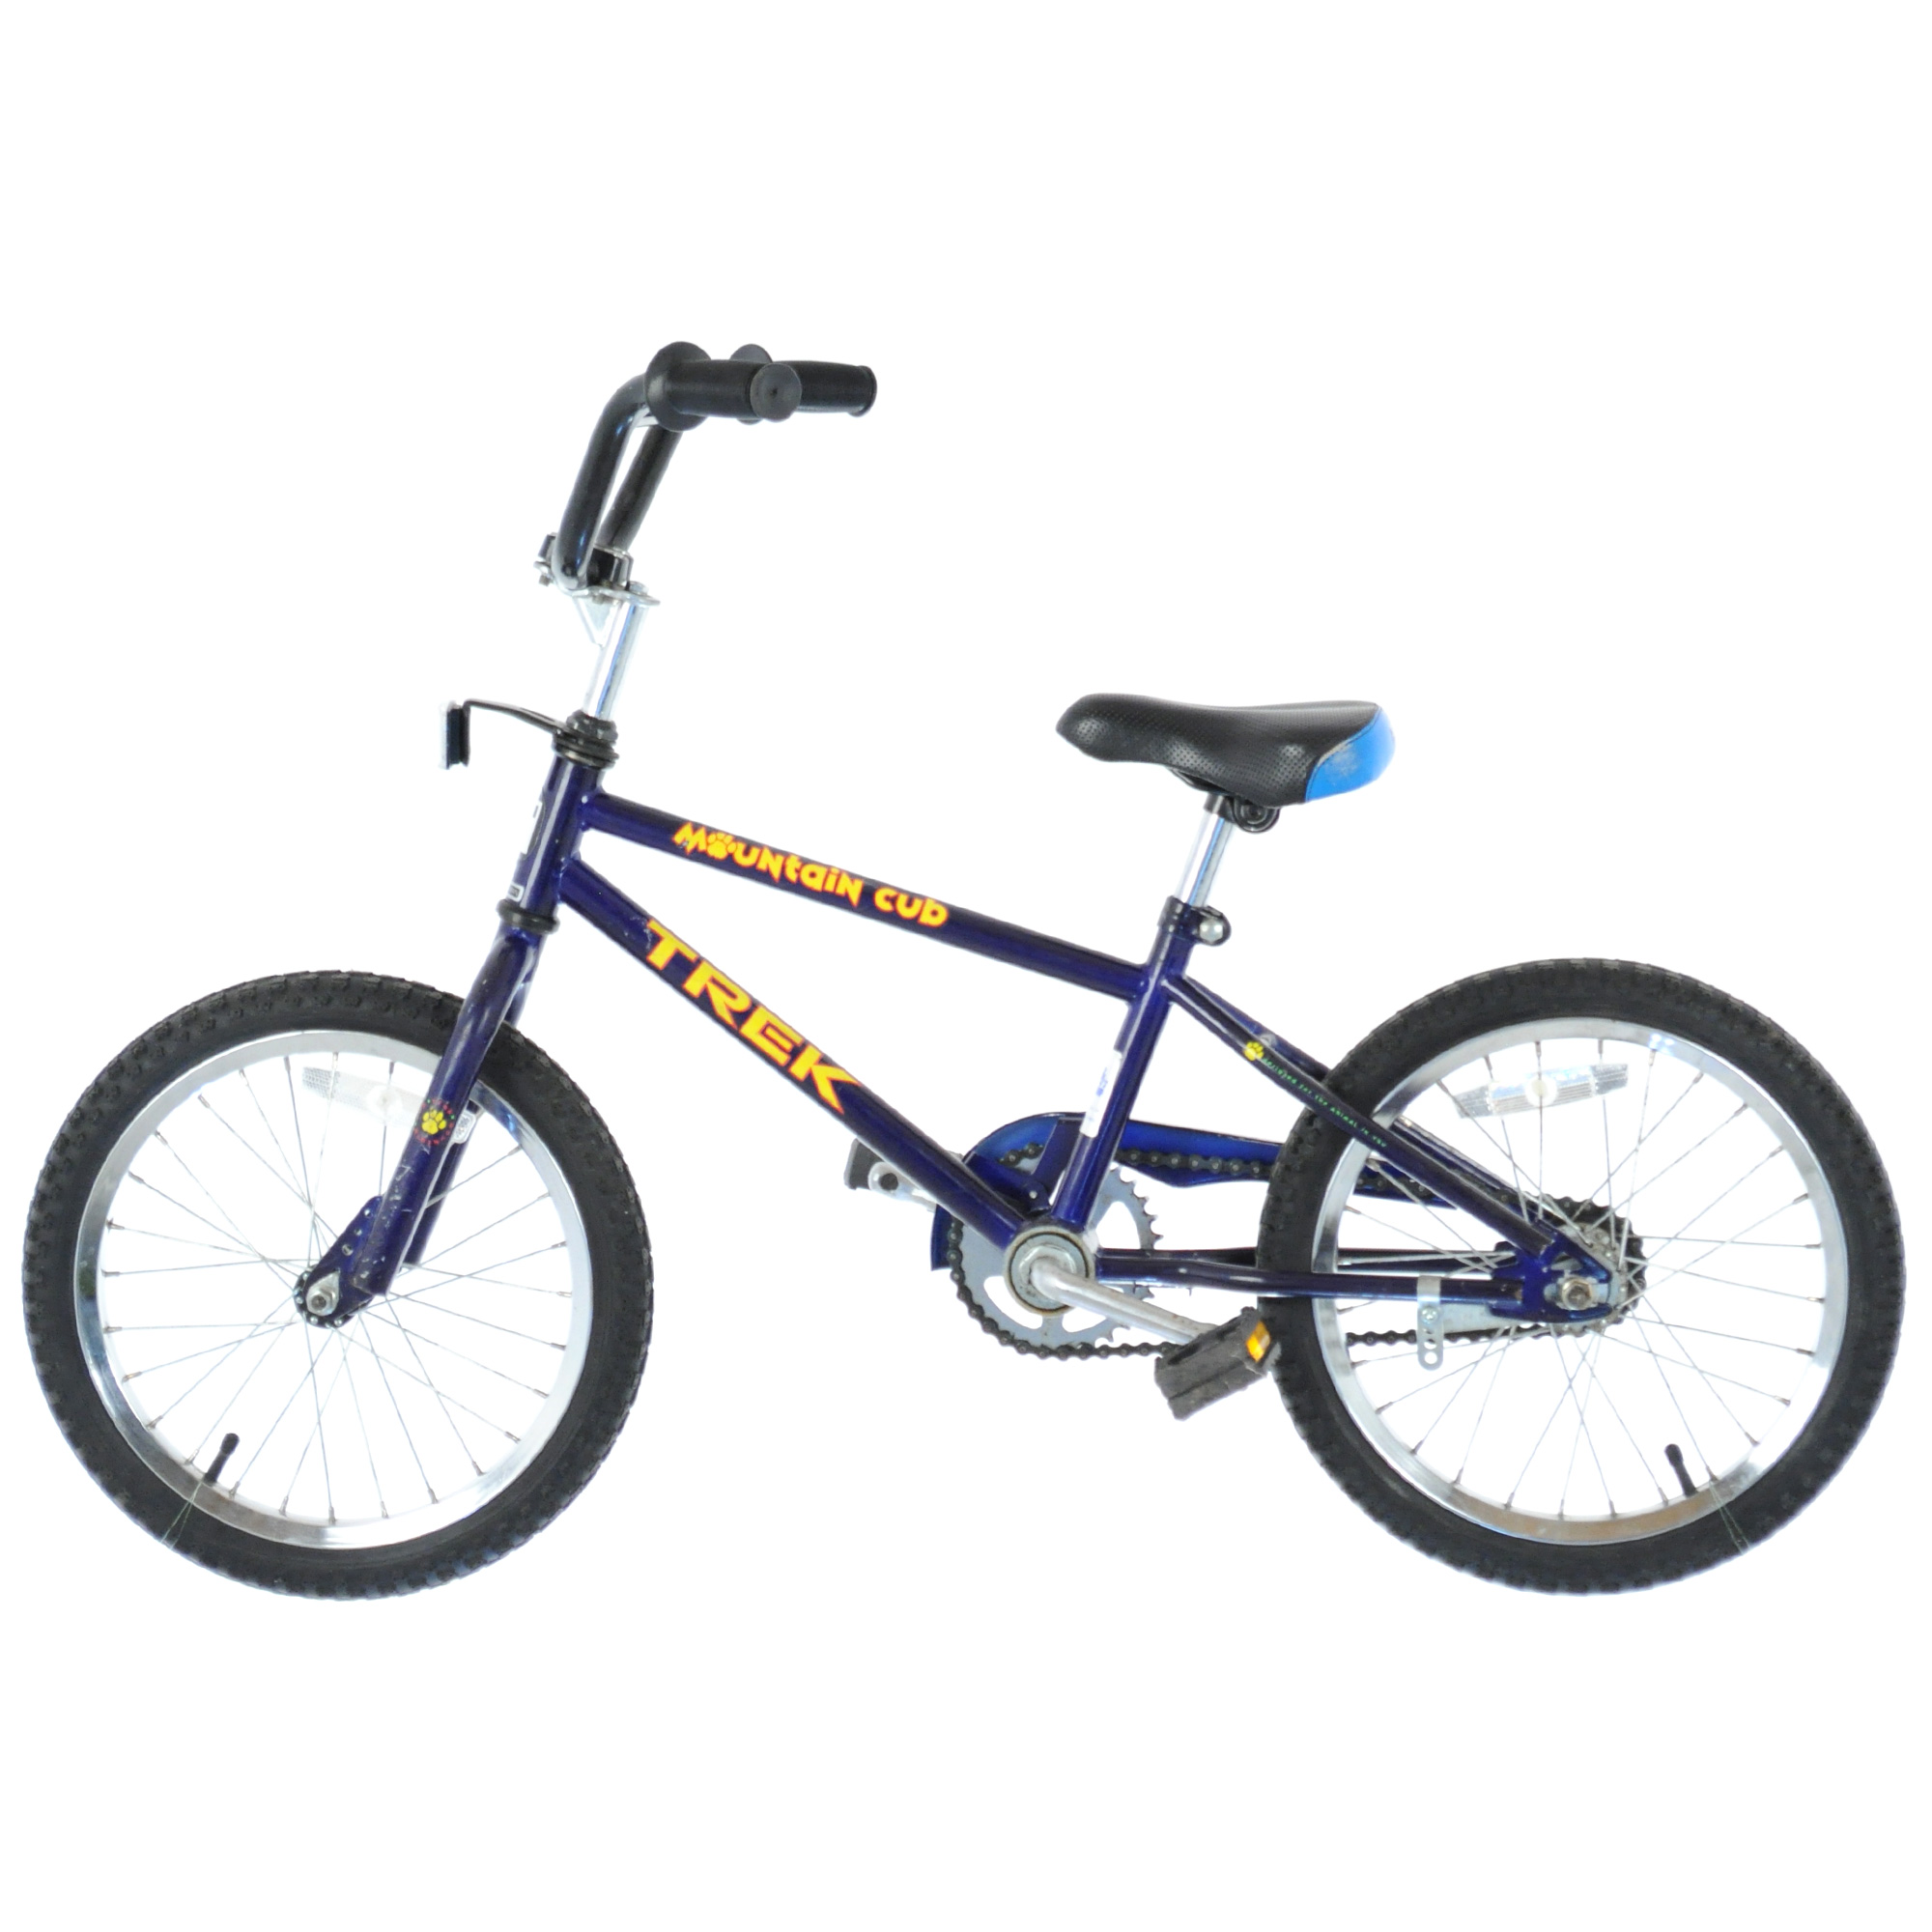 474ce51db0b 1990'S TREK MOUNTAIN CUB 16 Retro Kids Bike Bicycle // BLUE | eBay